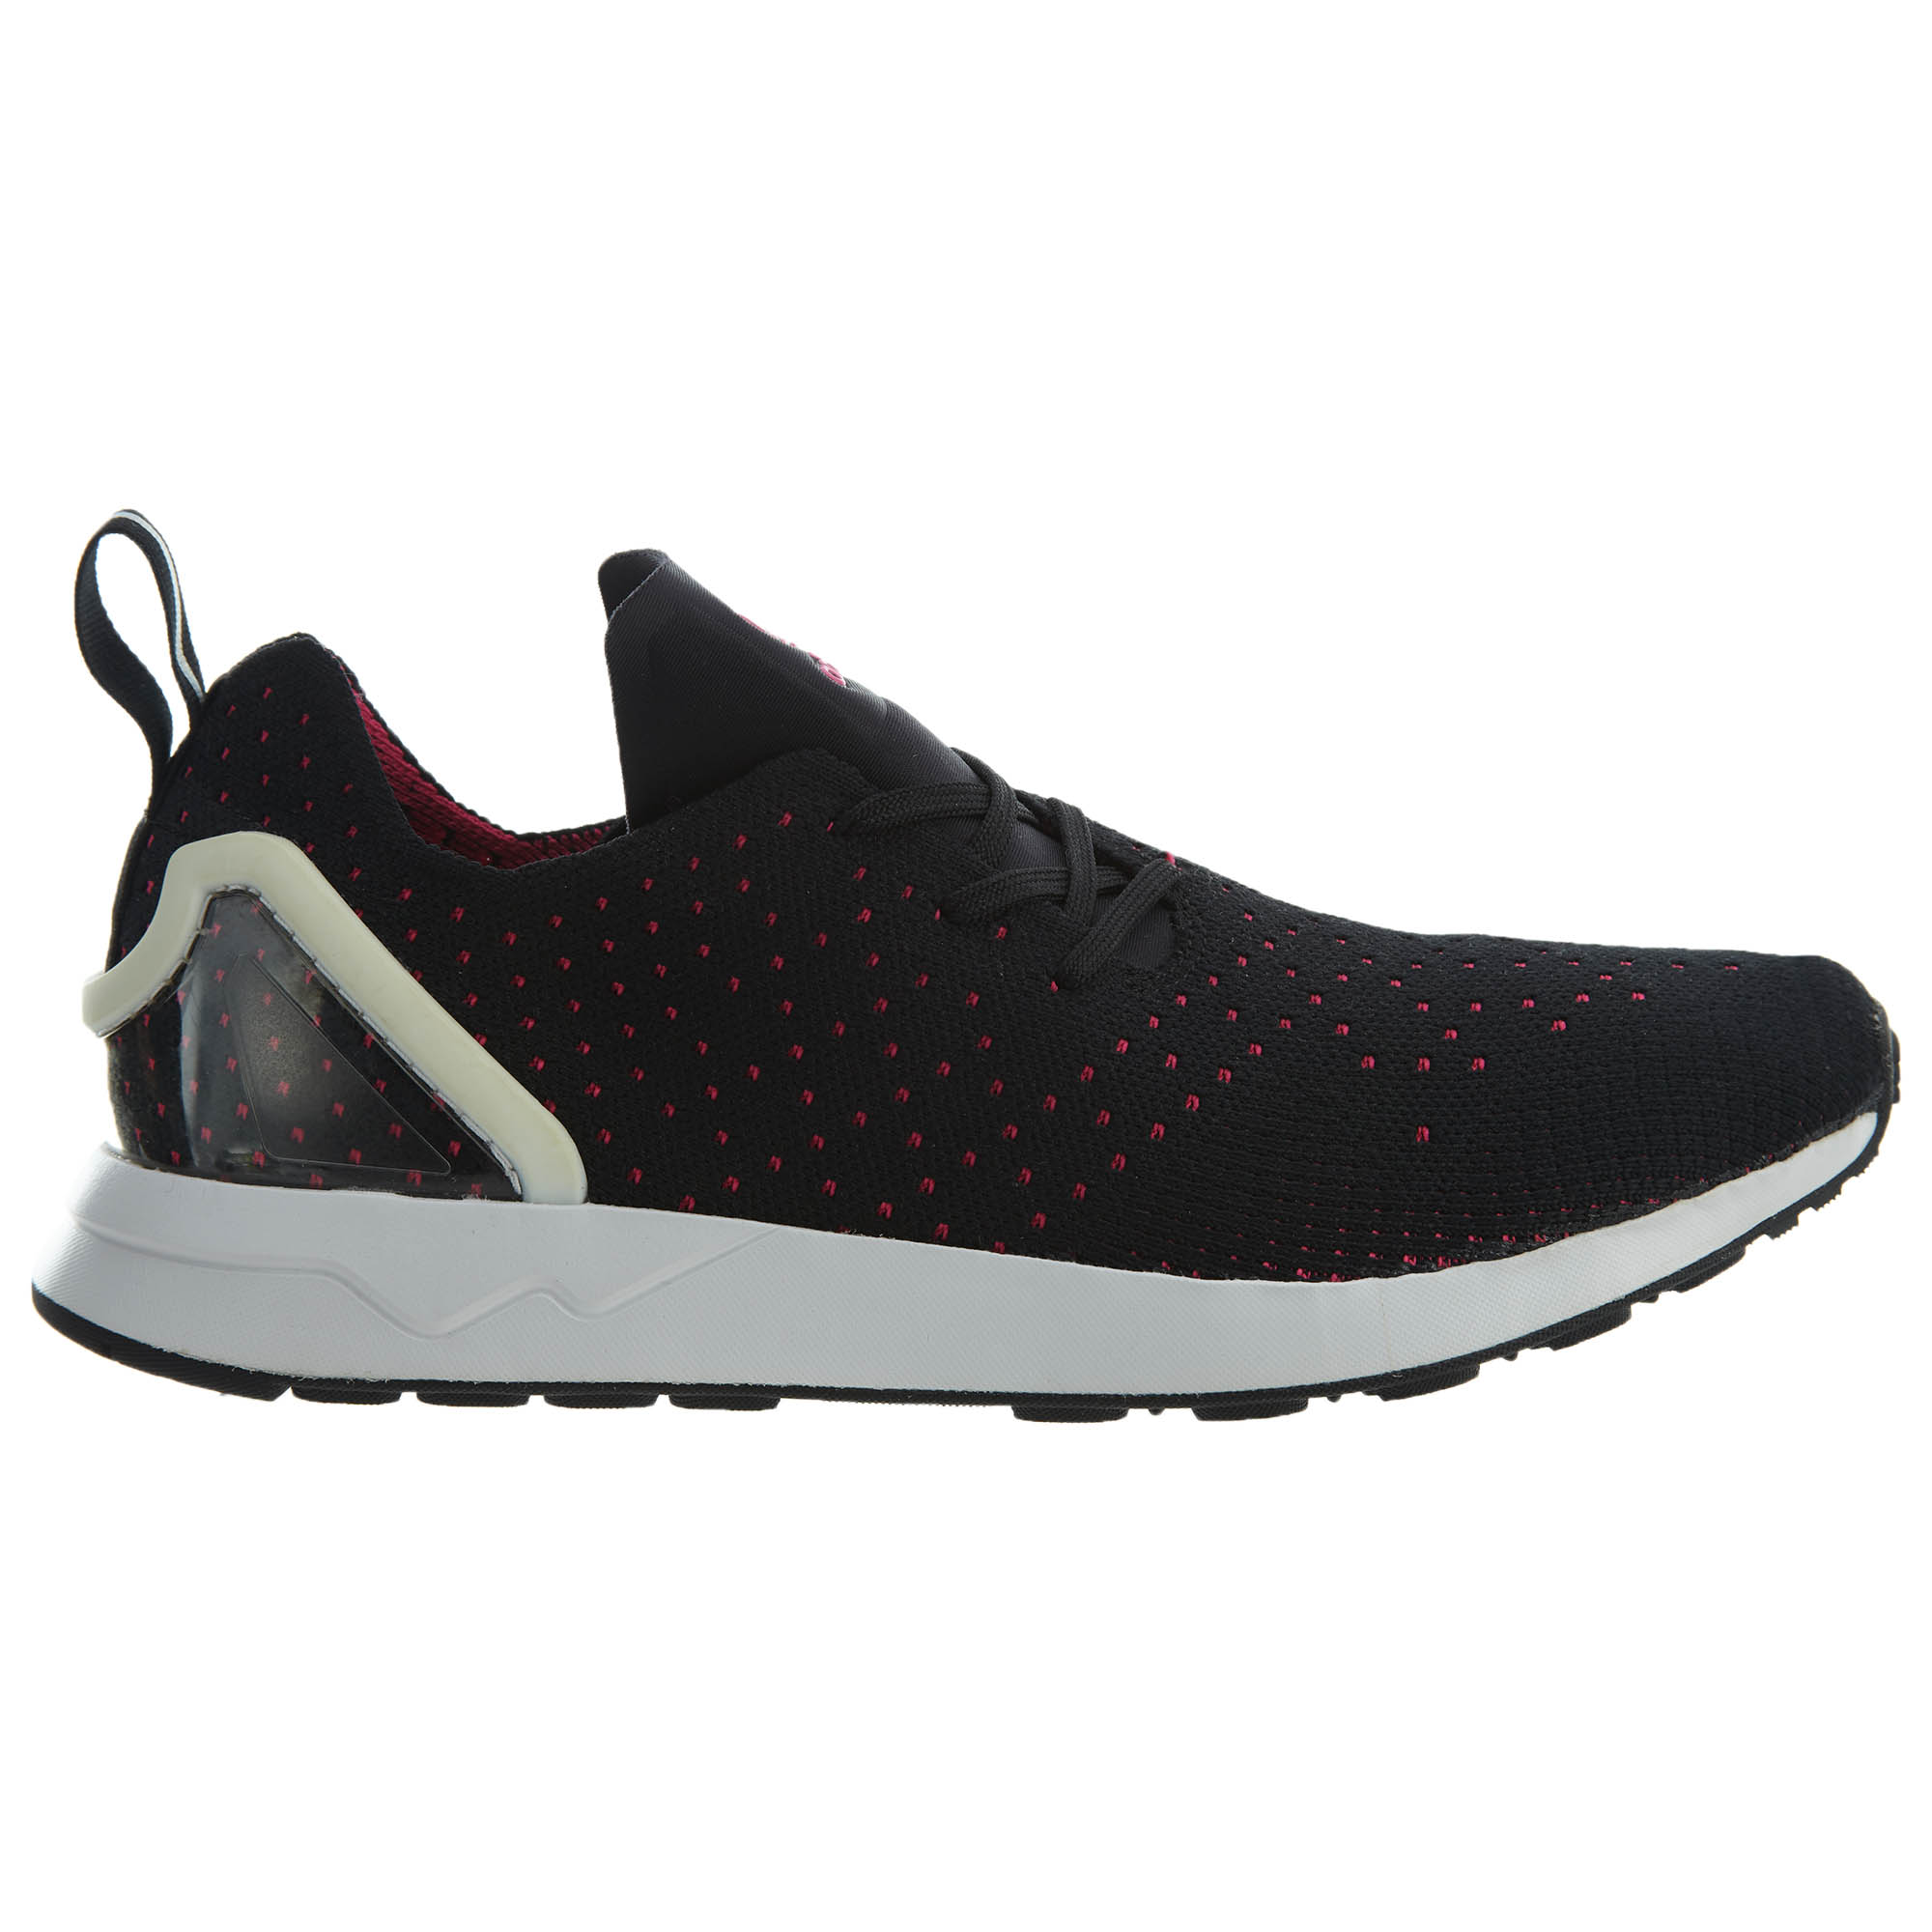 zx flux adidas pink and black